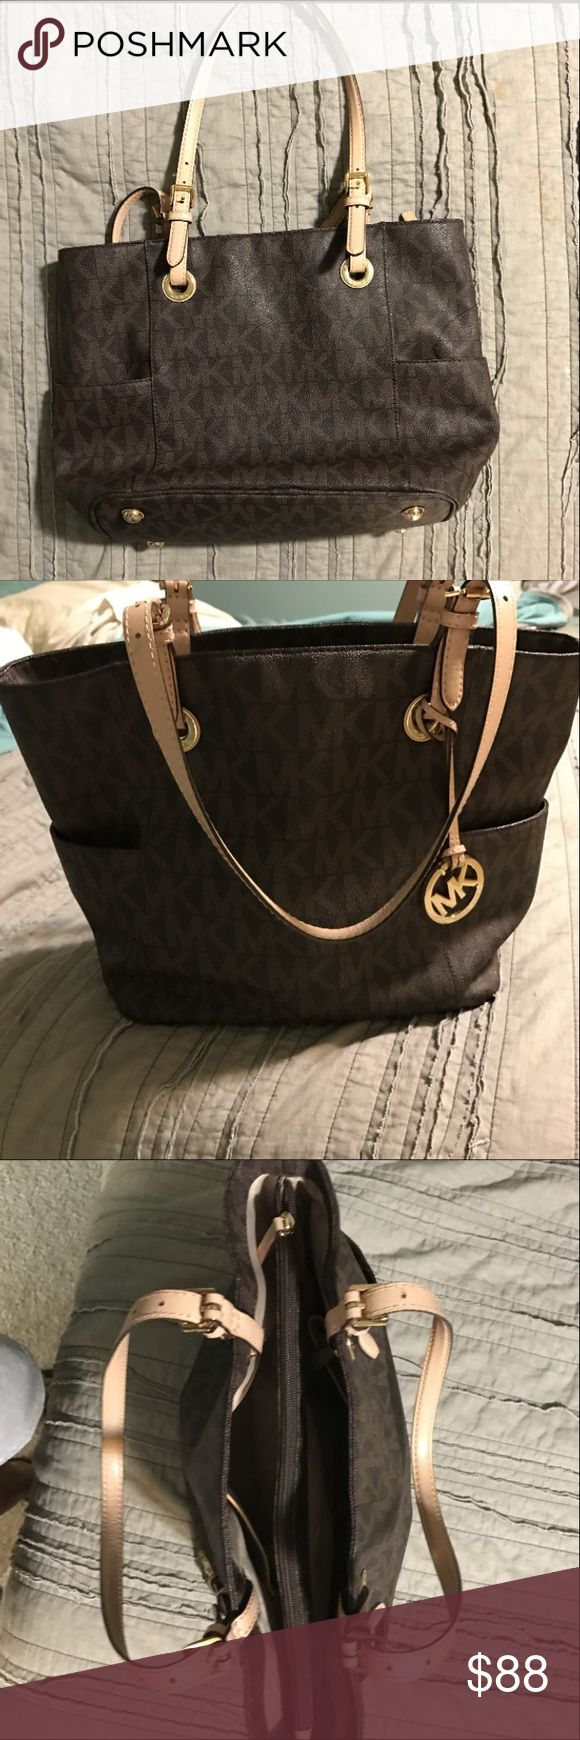 Michael Kors Jet Set Tote Great condition. One flaw- two small lipstick stains on inside of corner pocket. Michael Kors Bags Shoulder Bags